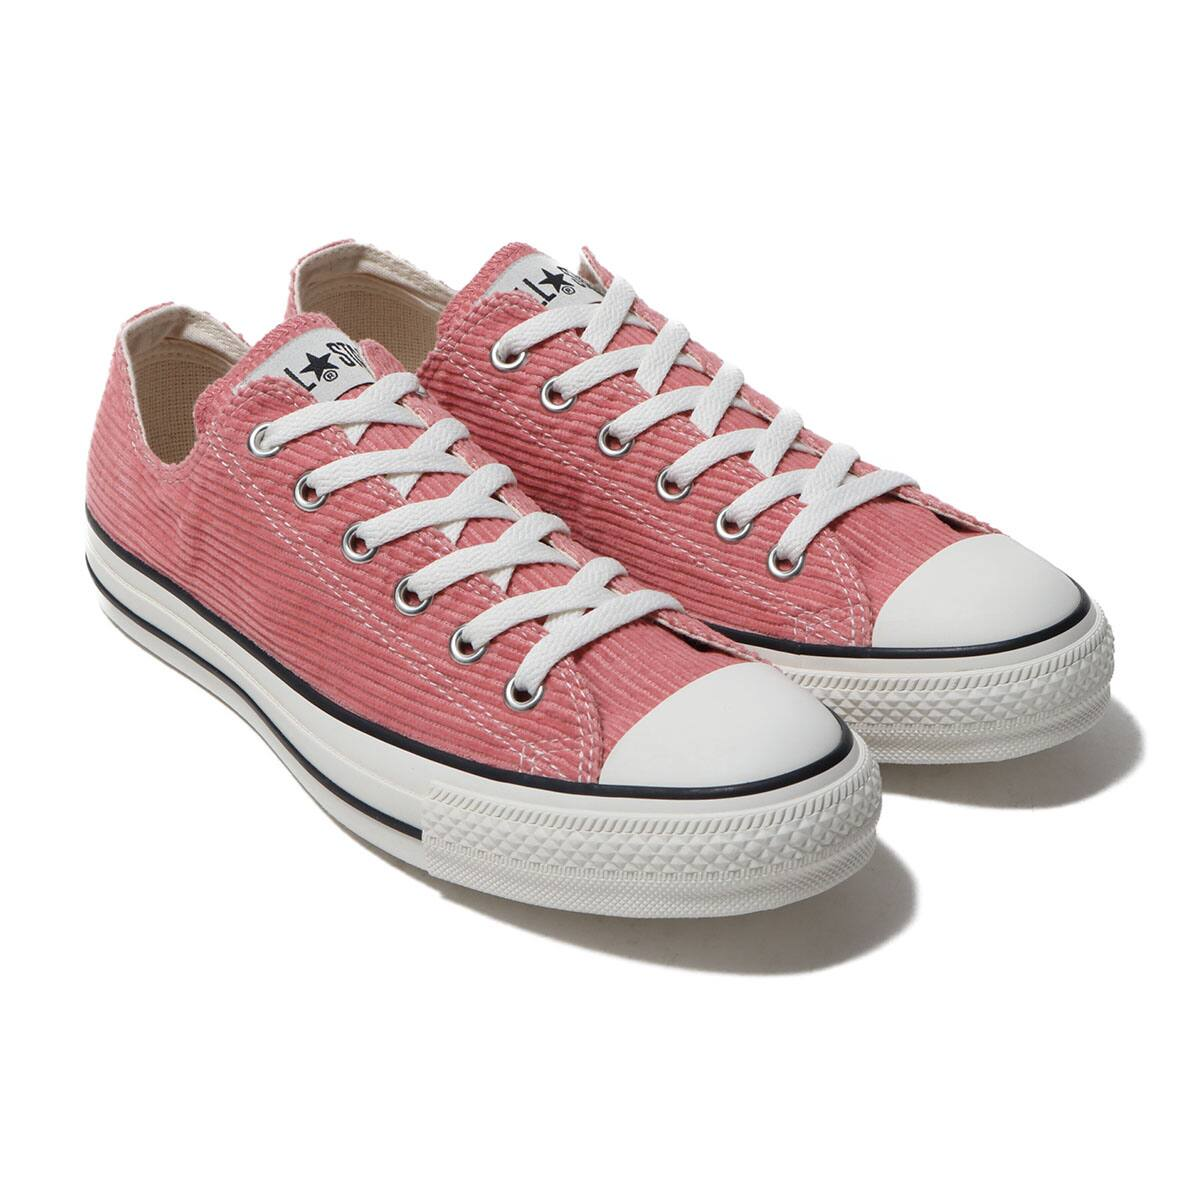 CONVERSE ALL STAR WASHEDCORDUROY OX PINK 19HO-I_photo_large